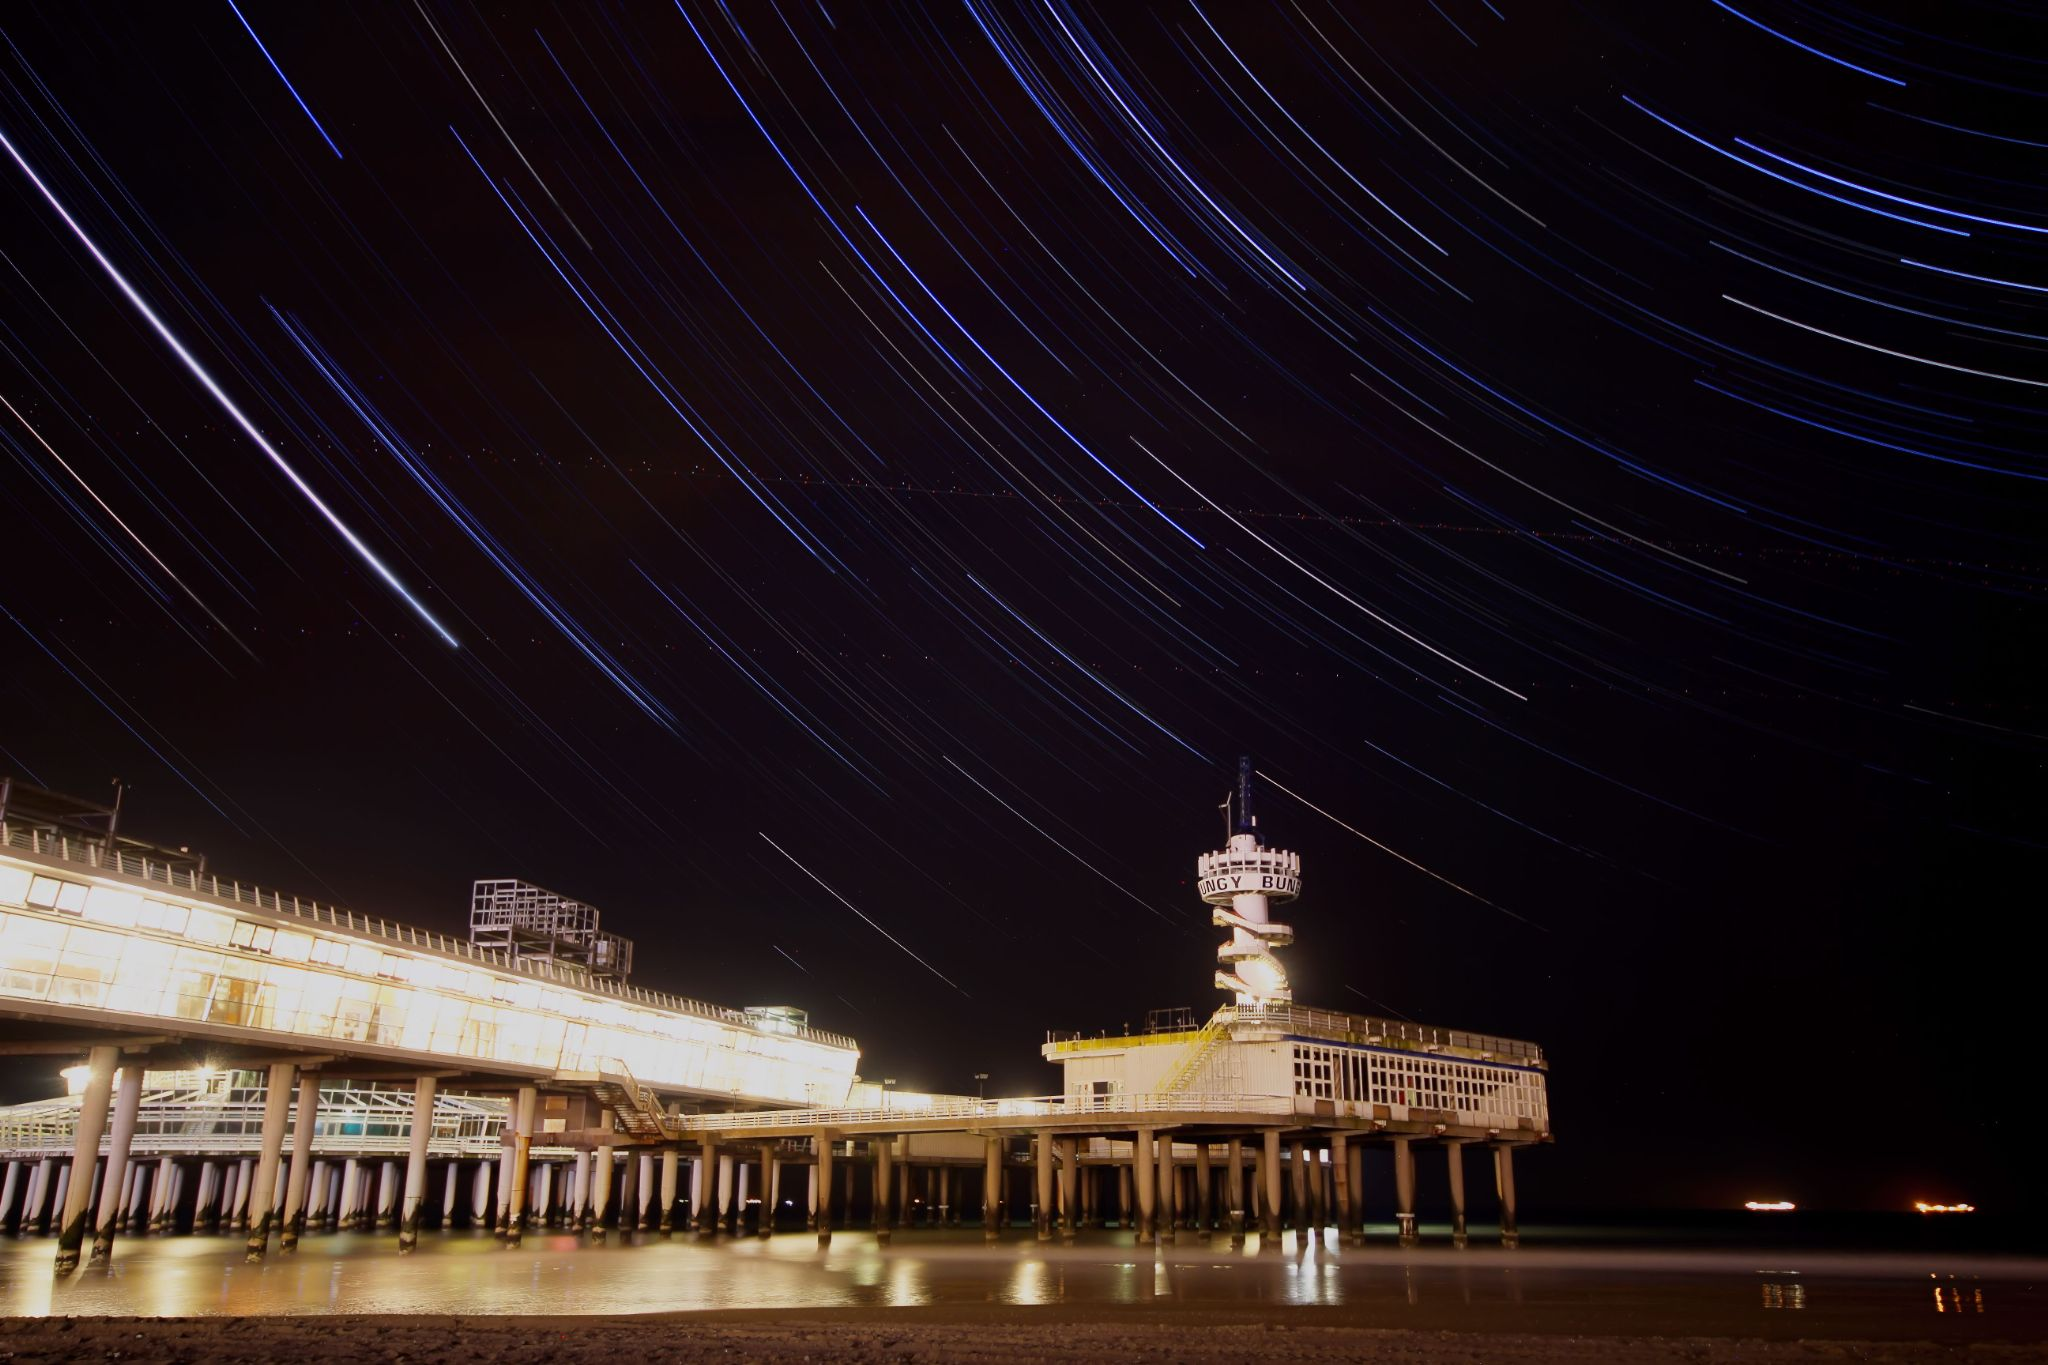 Star trails above city pier by jooud